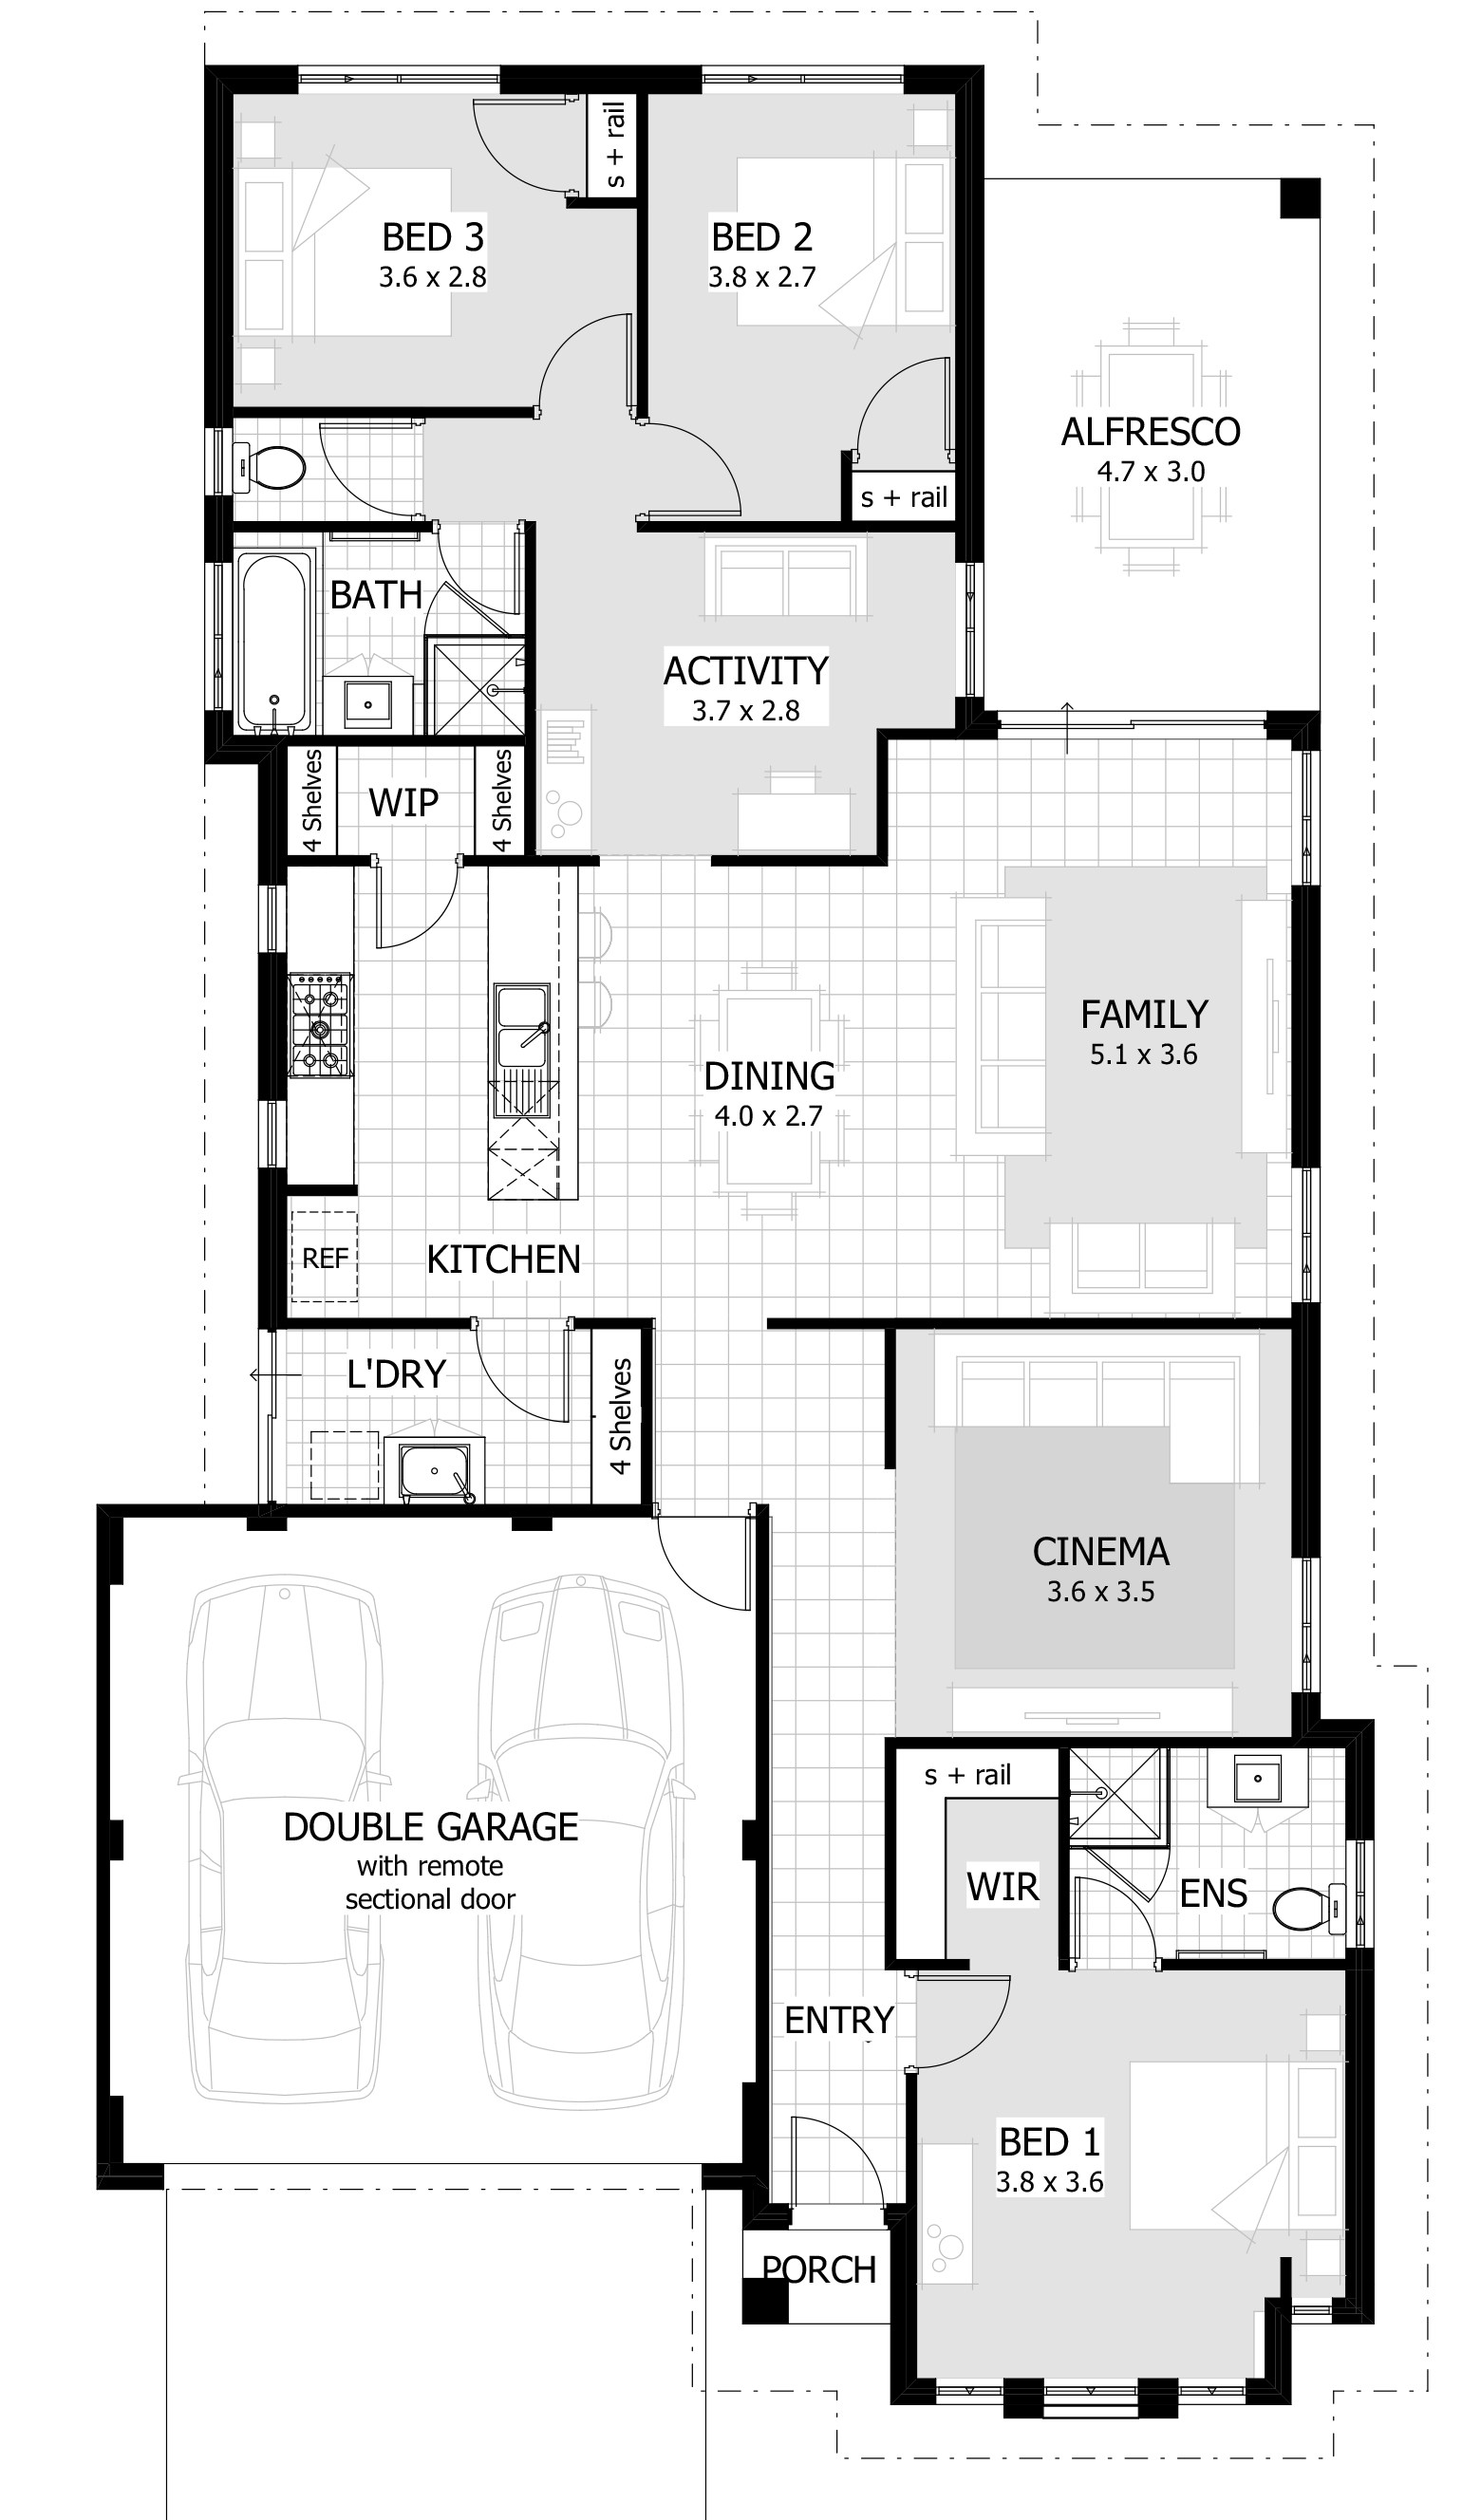 traditional 3 bedroom house plans photo - 8